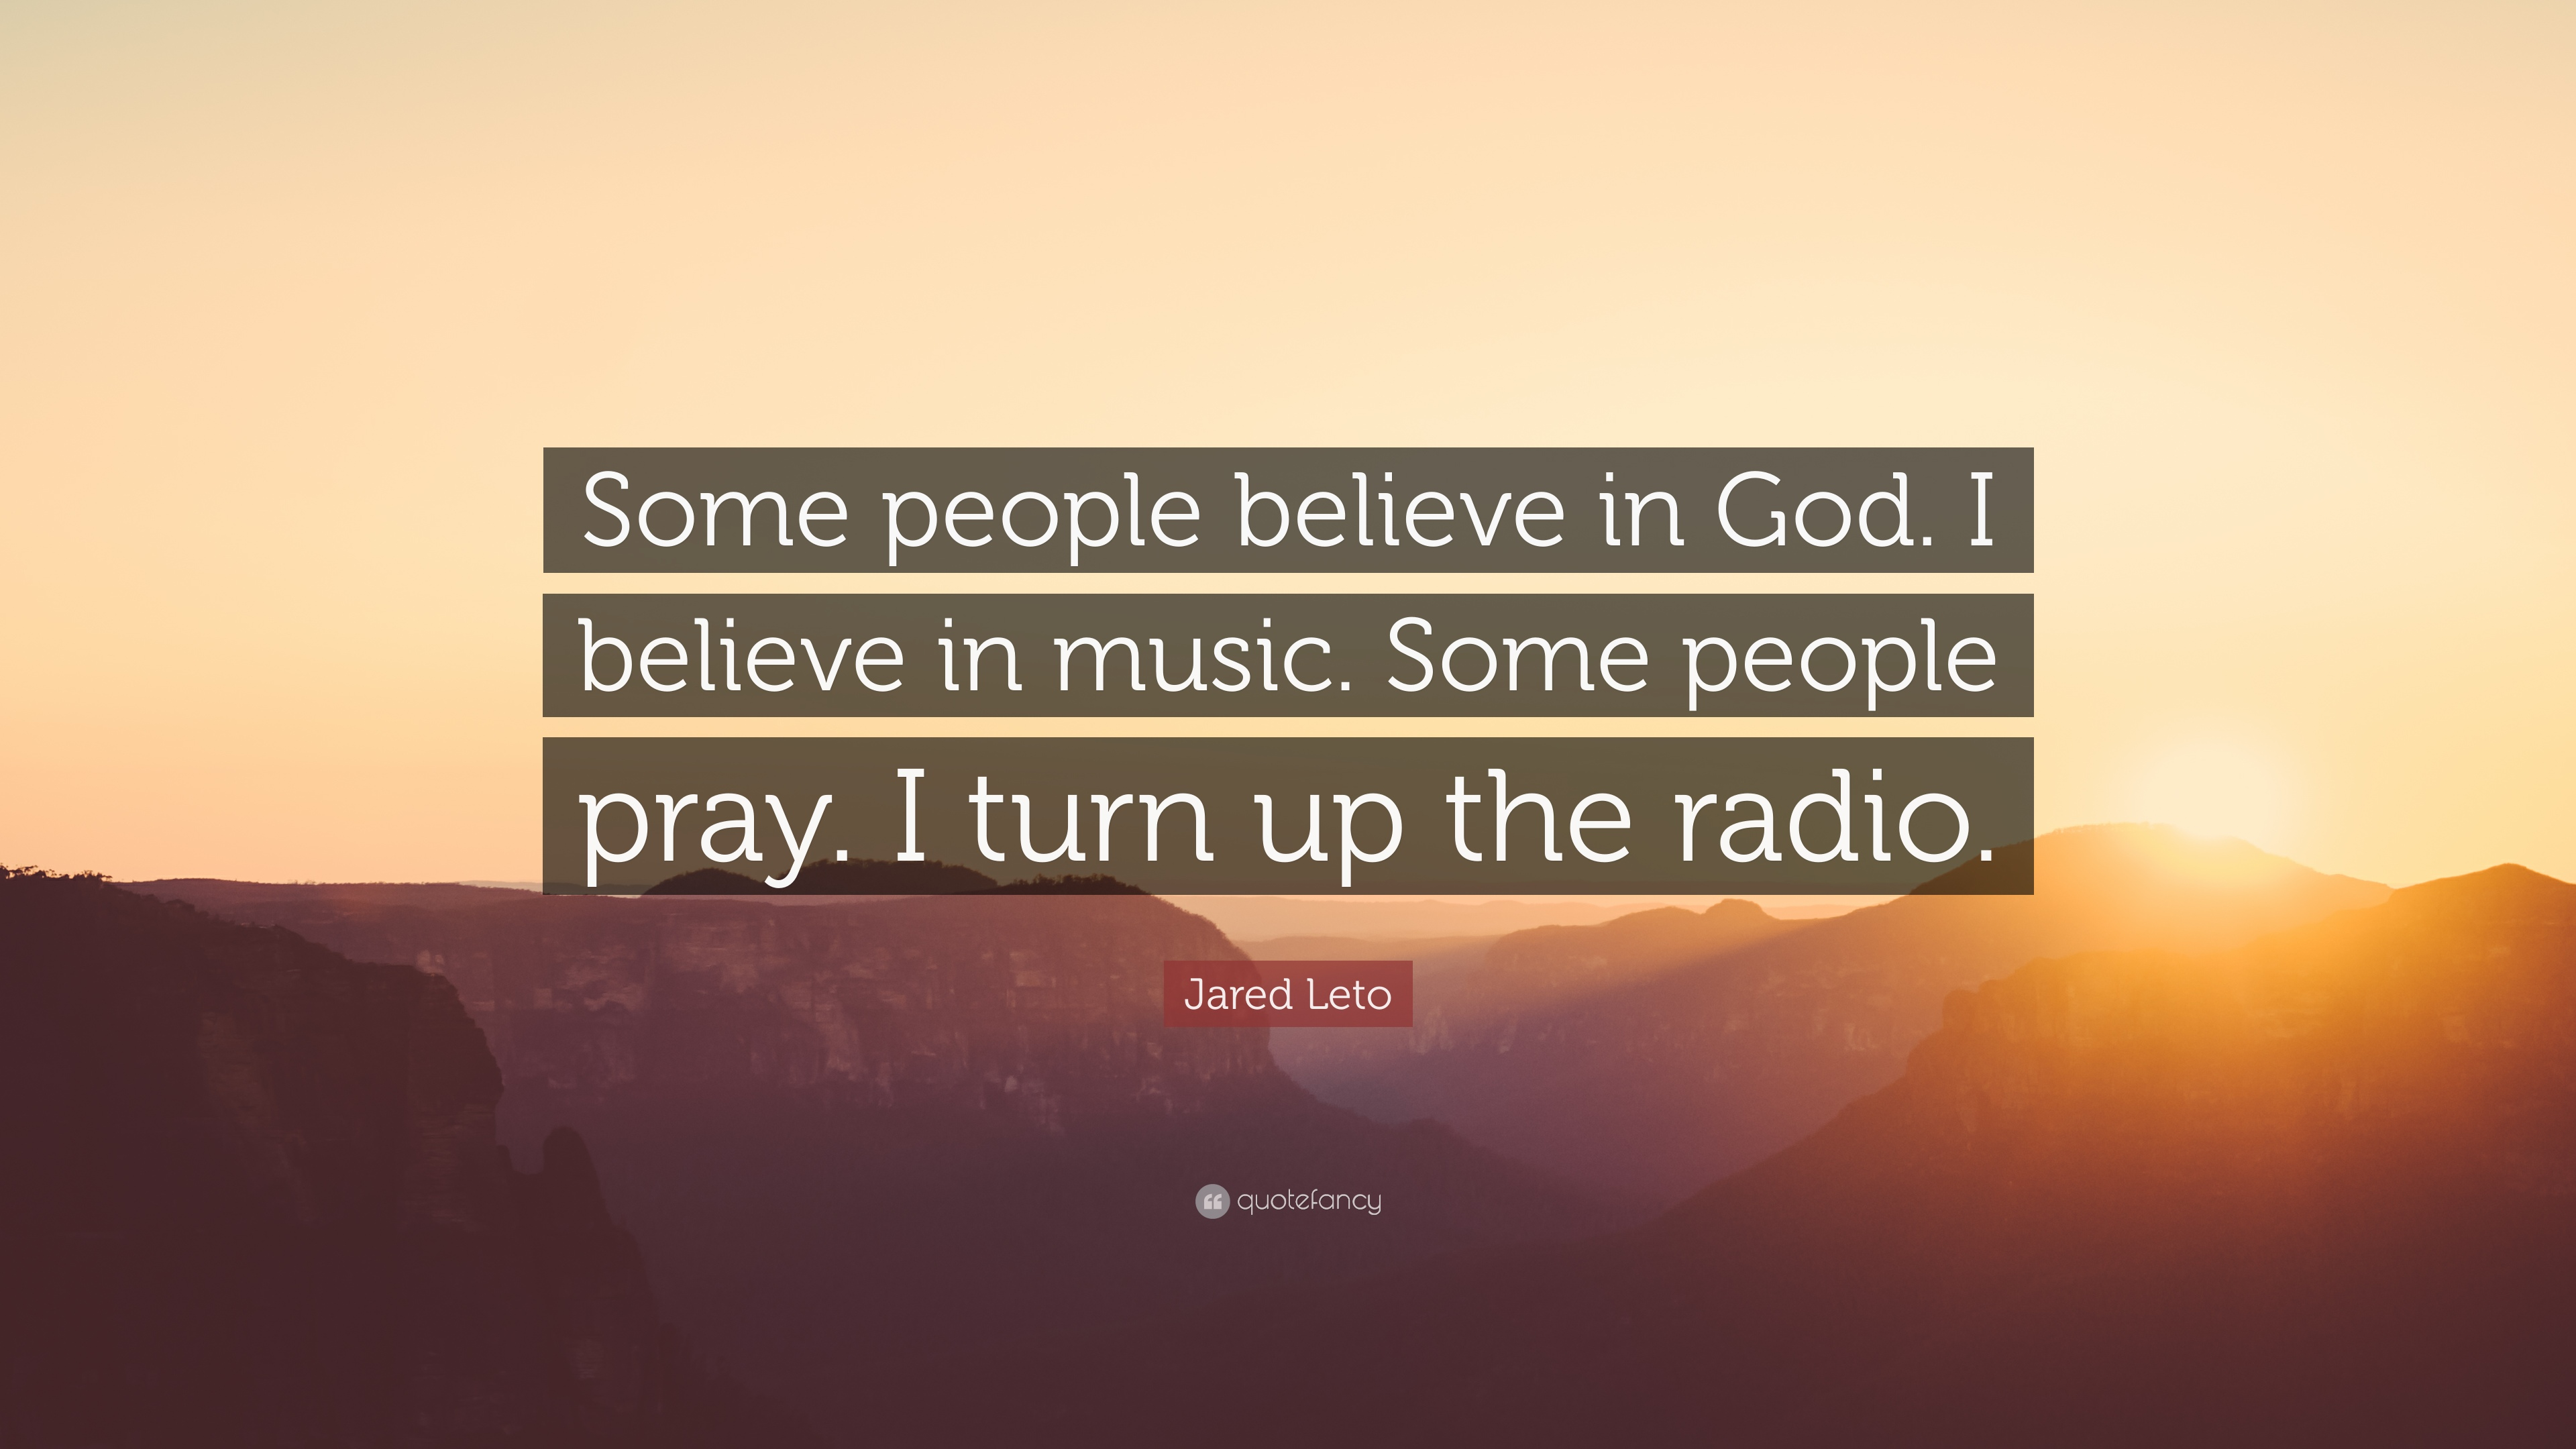 Some people believe in god. I believe in music. Some people pray, I turn up the radio. -Jared Leto.